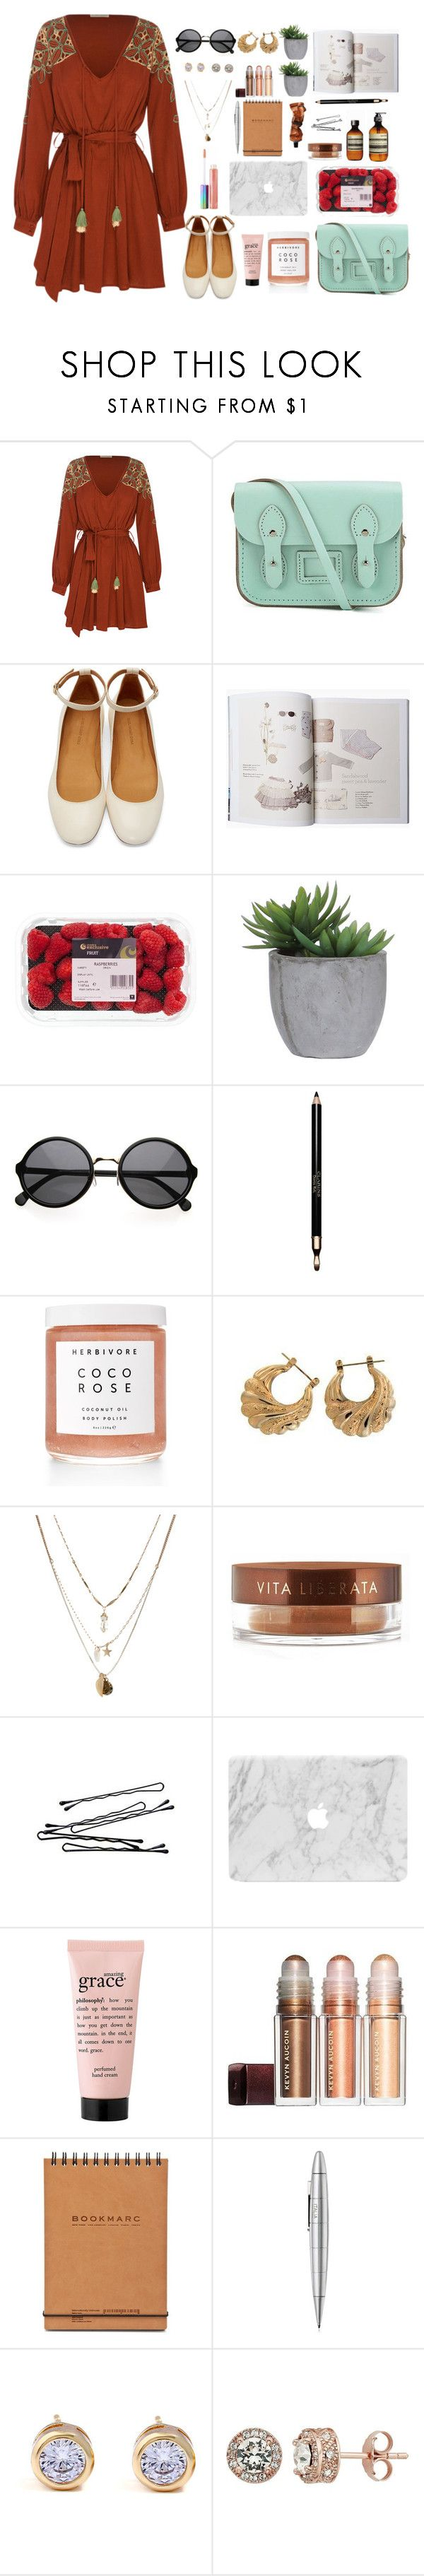 """EVERYTHING"" by shealwaysfashion ❤ liked on Polyvore featuring All That Remains, The Cambridge Satchel Company, Isabel Marant, Lux-Art Silks, Clarins, Herbivore, Orelia, Vita Liberata, philosophy and Giuliano Mazzuoli"